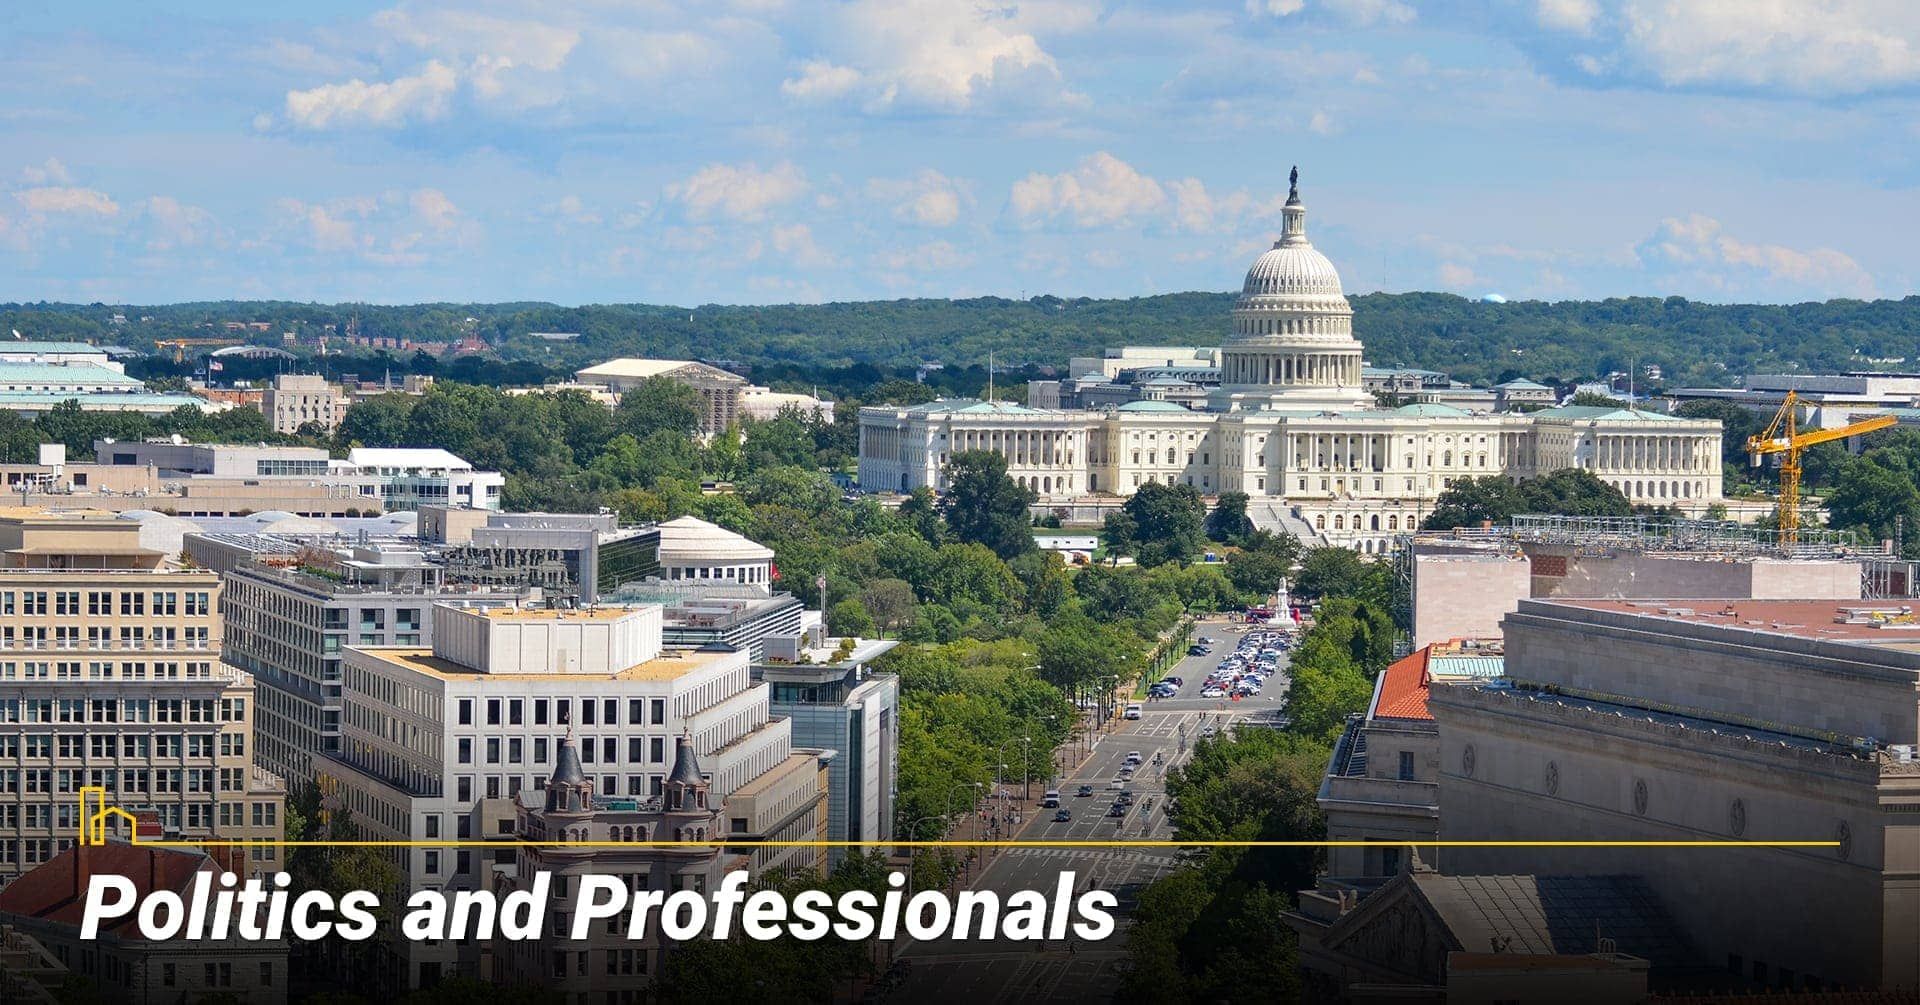 Politics and Professionals in Washington, DC